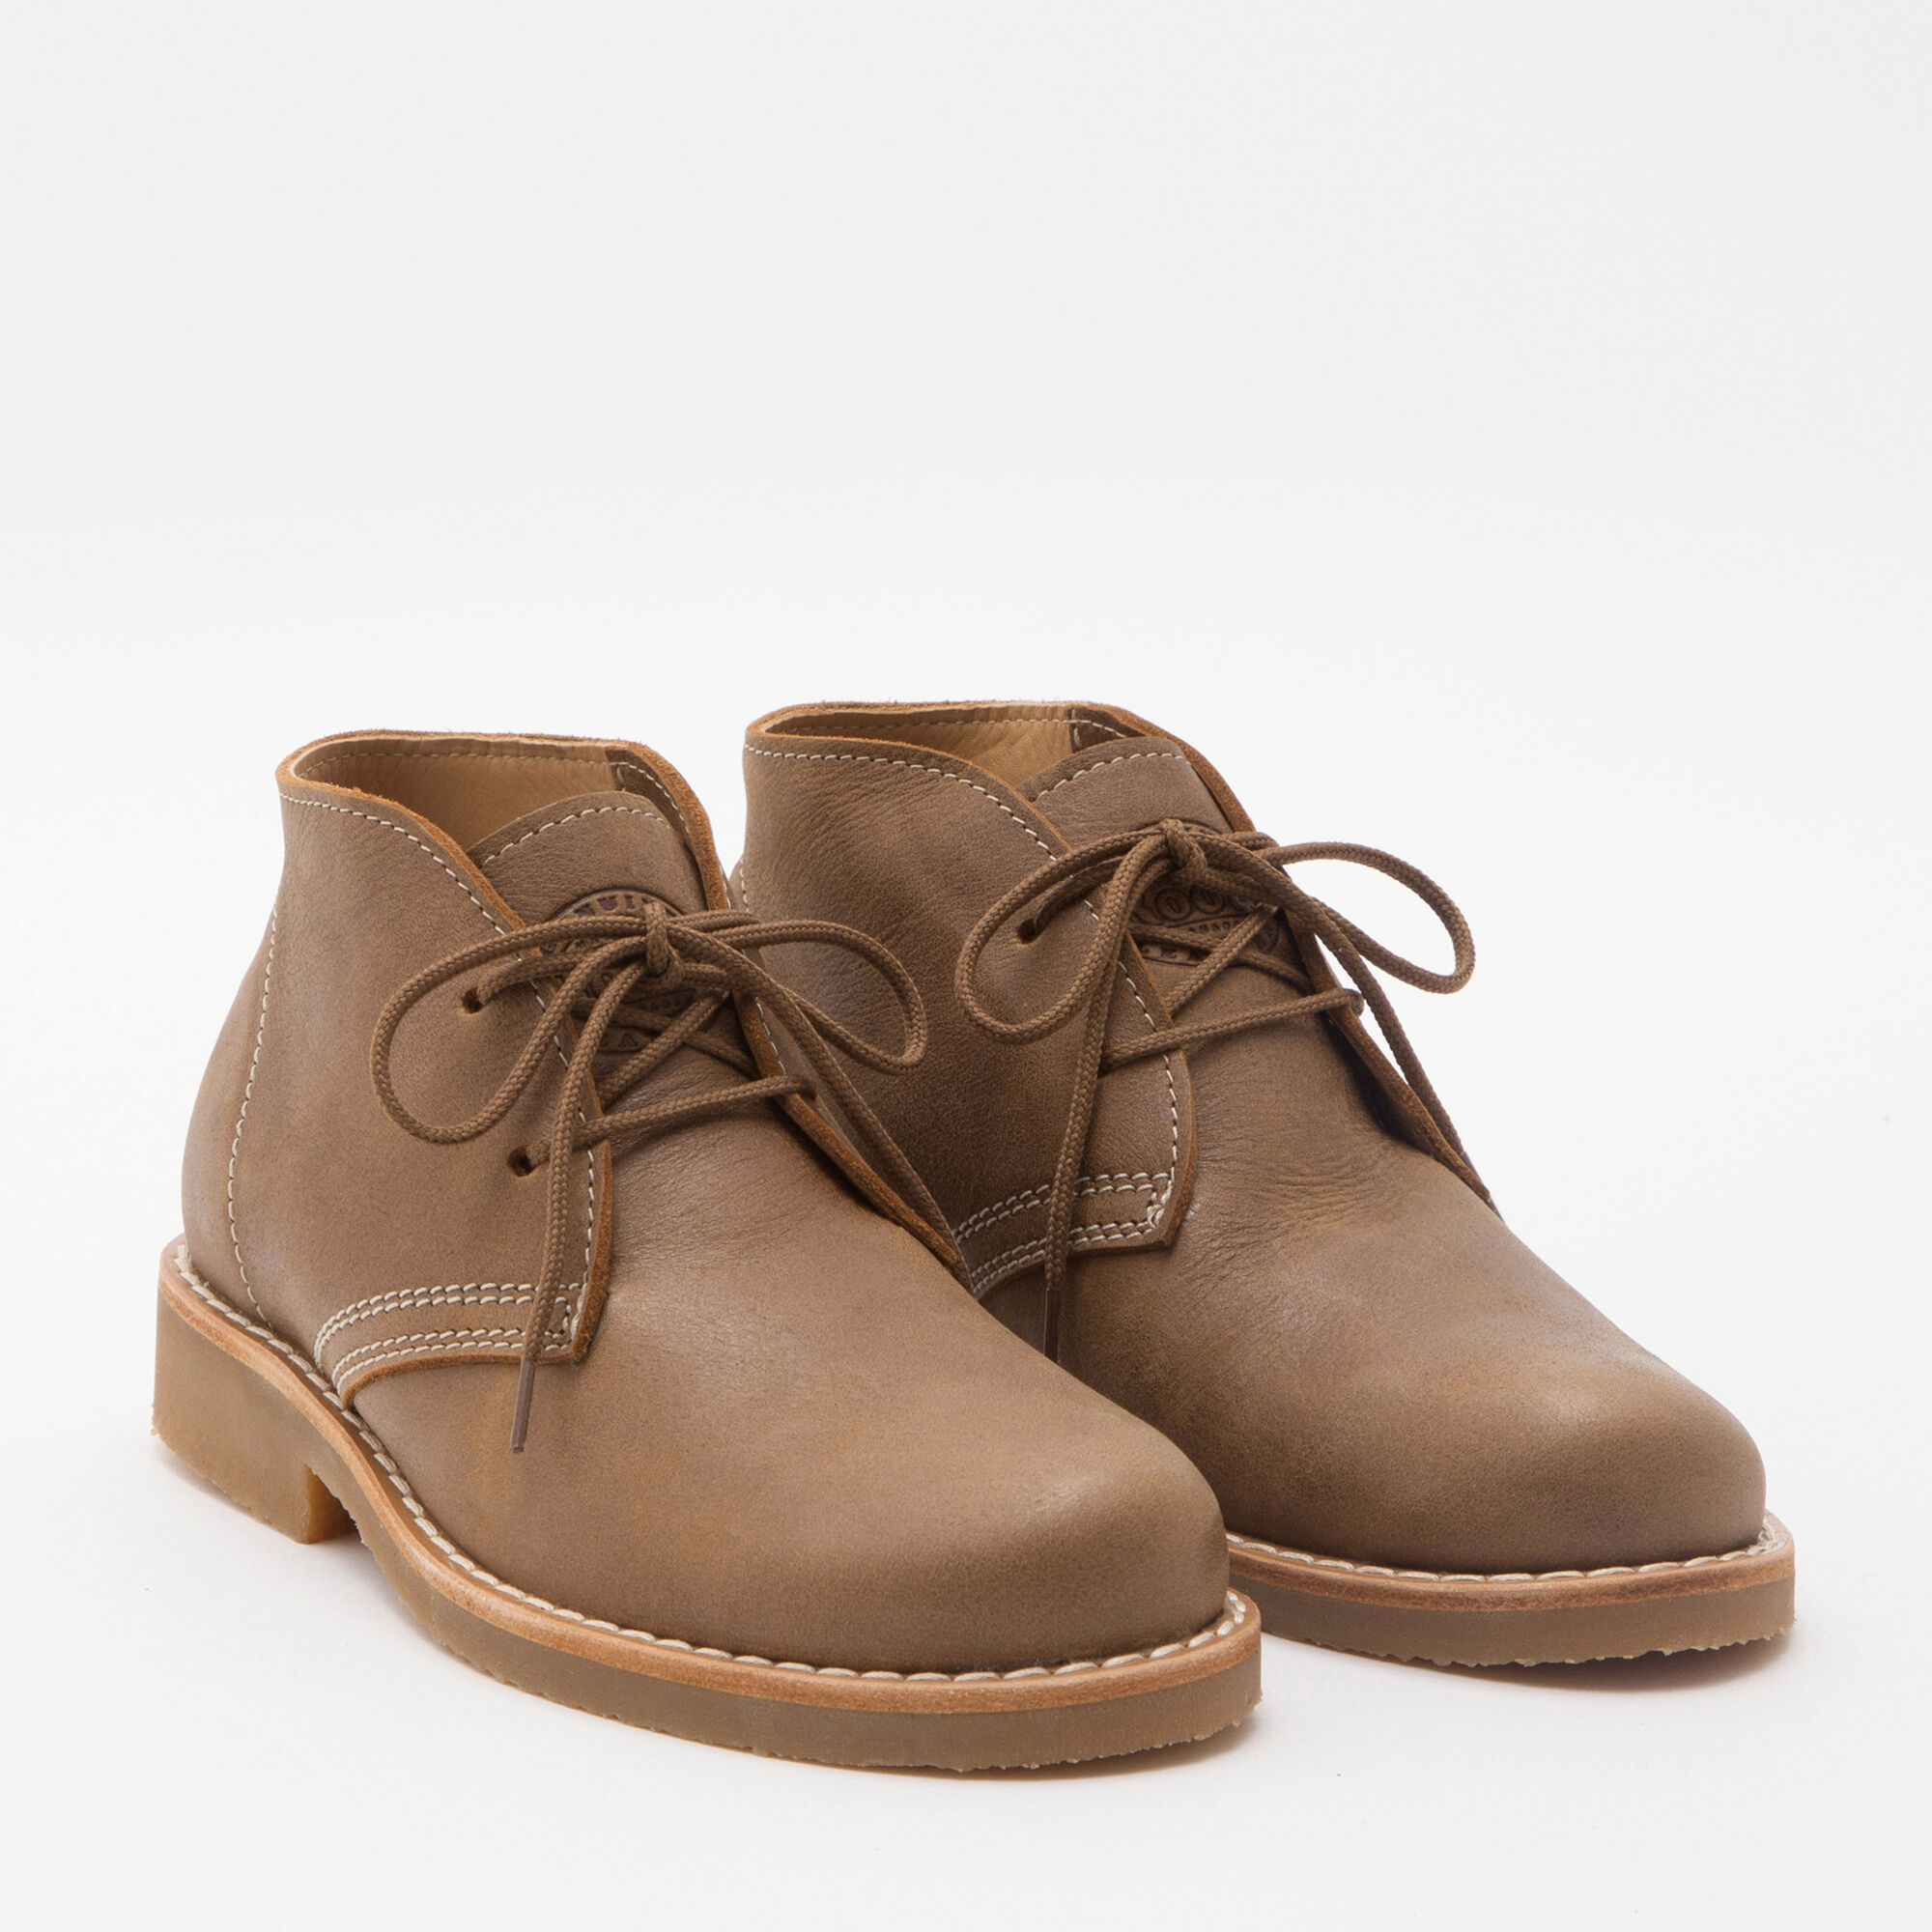 High Sole Shoes For Mens